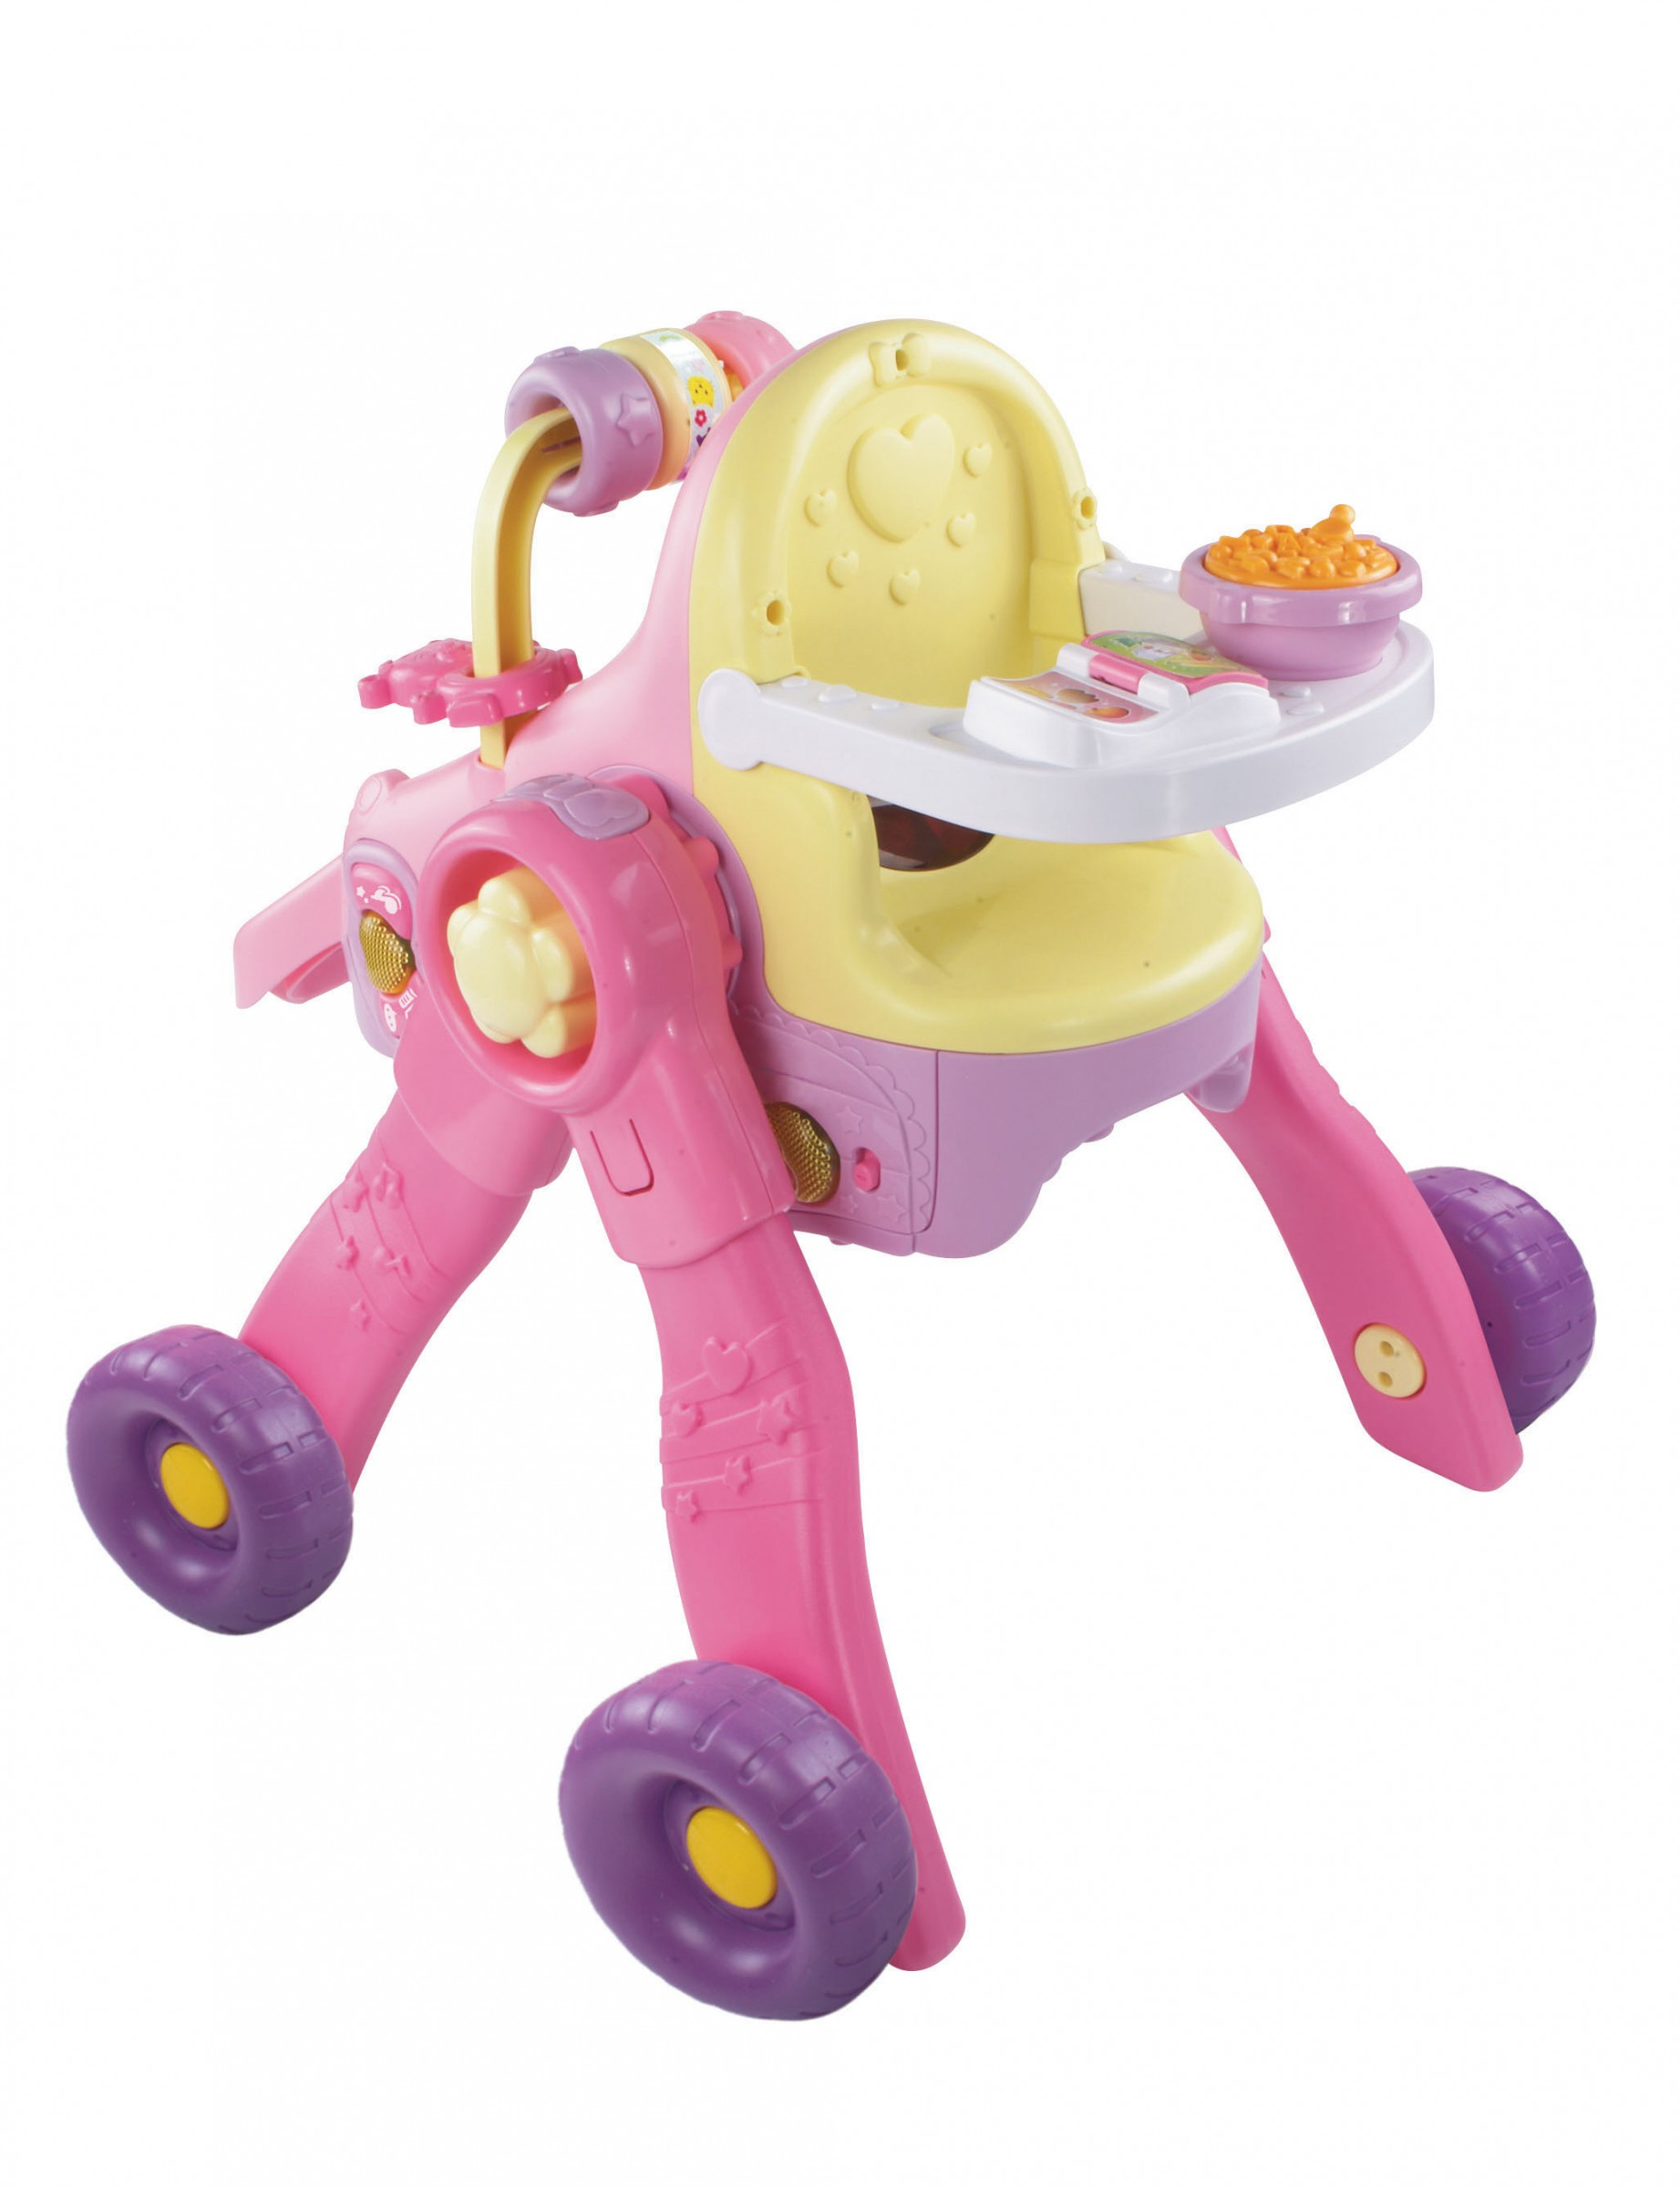 VTech Little Love 3 in 1 Magischer Puppenwagen